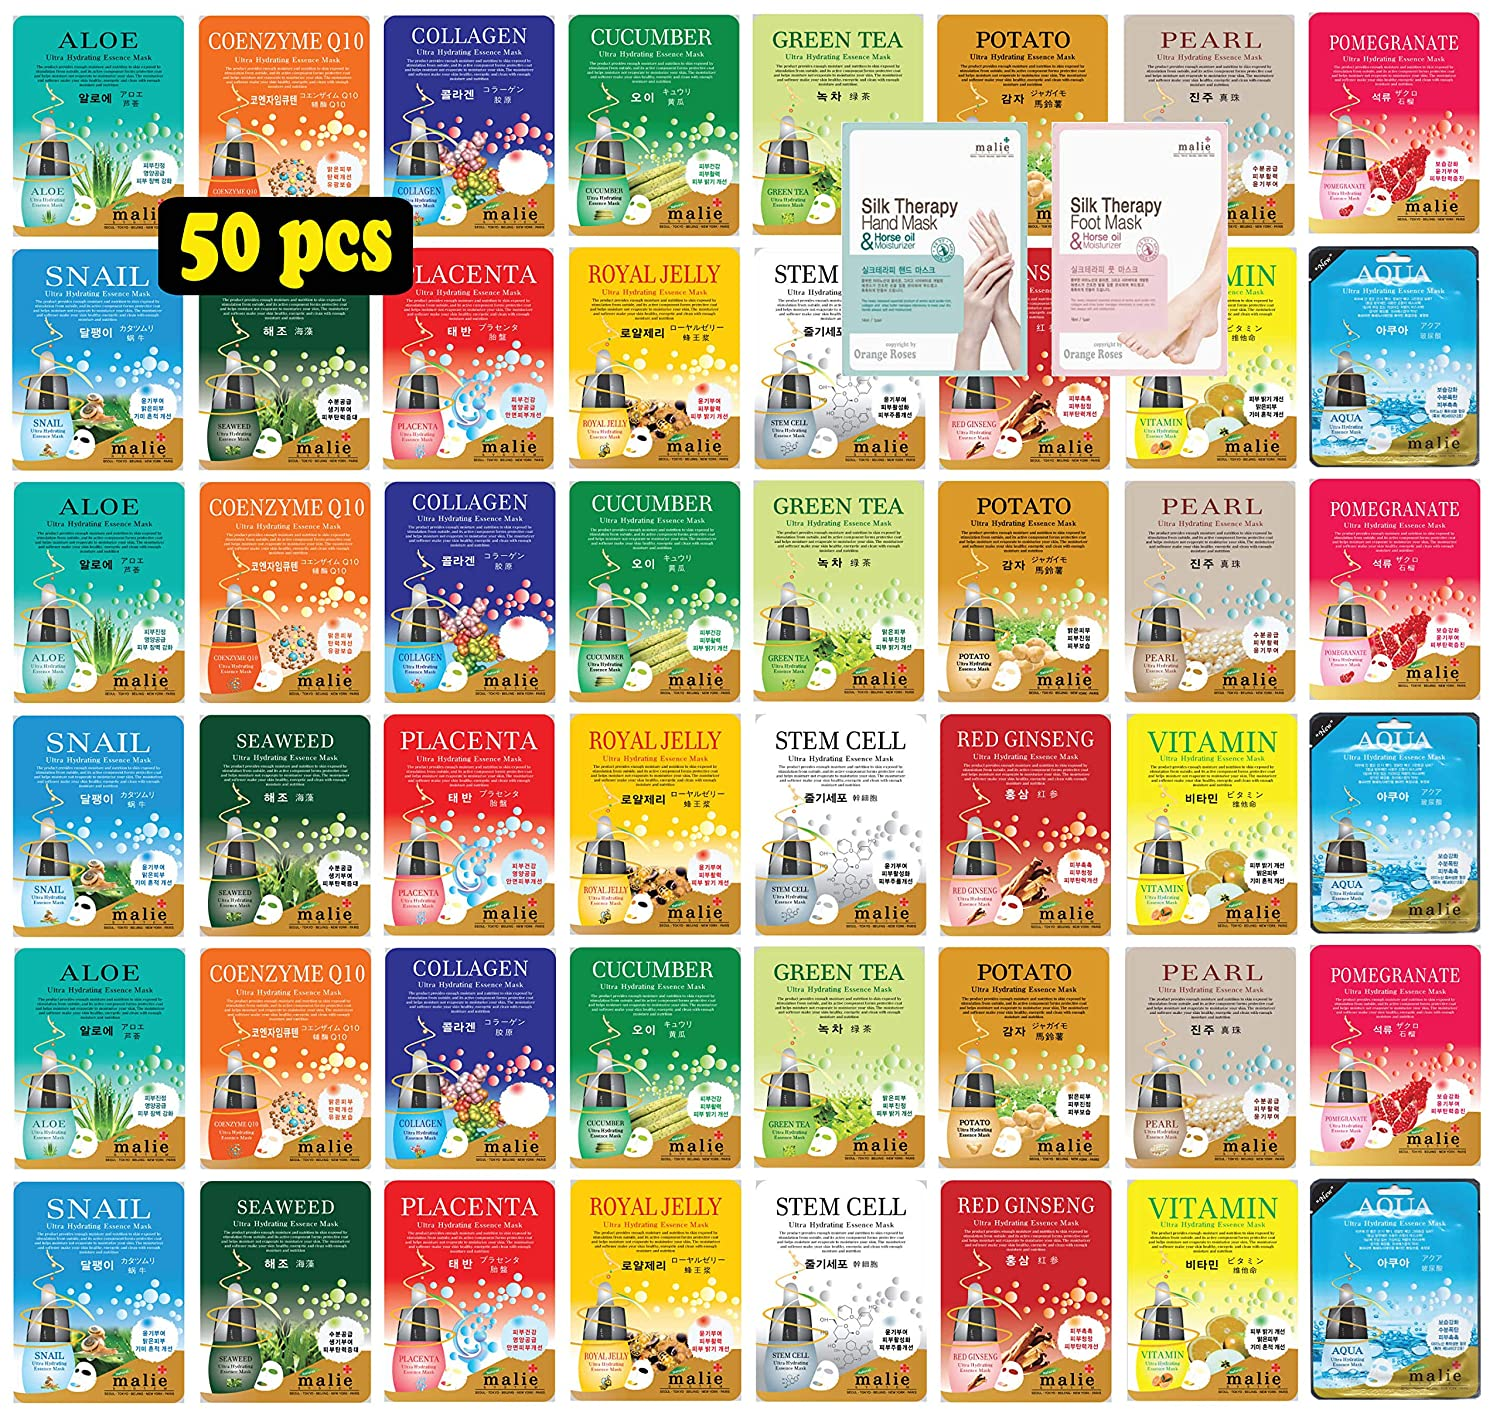 [OBS lab] 50 pcs Ultra Hydrating Essence Mask, Korean Facial Mask Sheet, 50 Combo-Pack ( 3 x 16 Types + 1 Hand Mask + 1 Foot Mask )